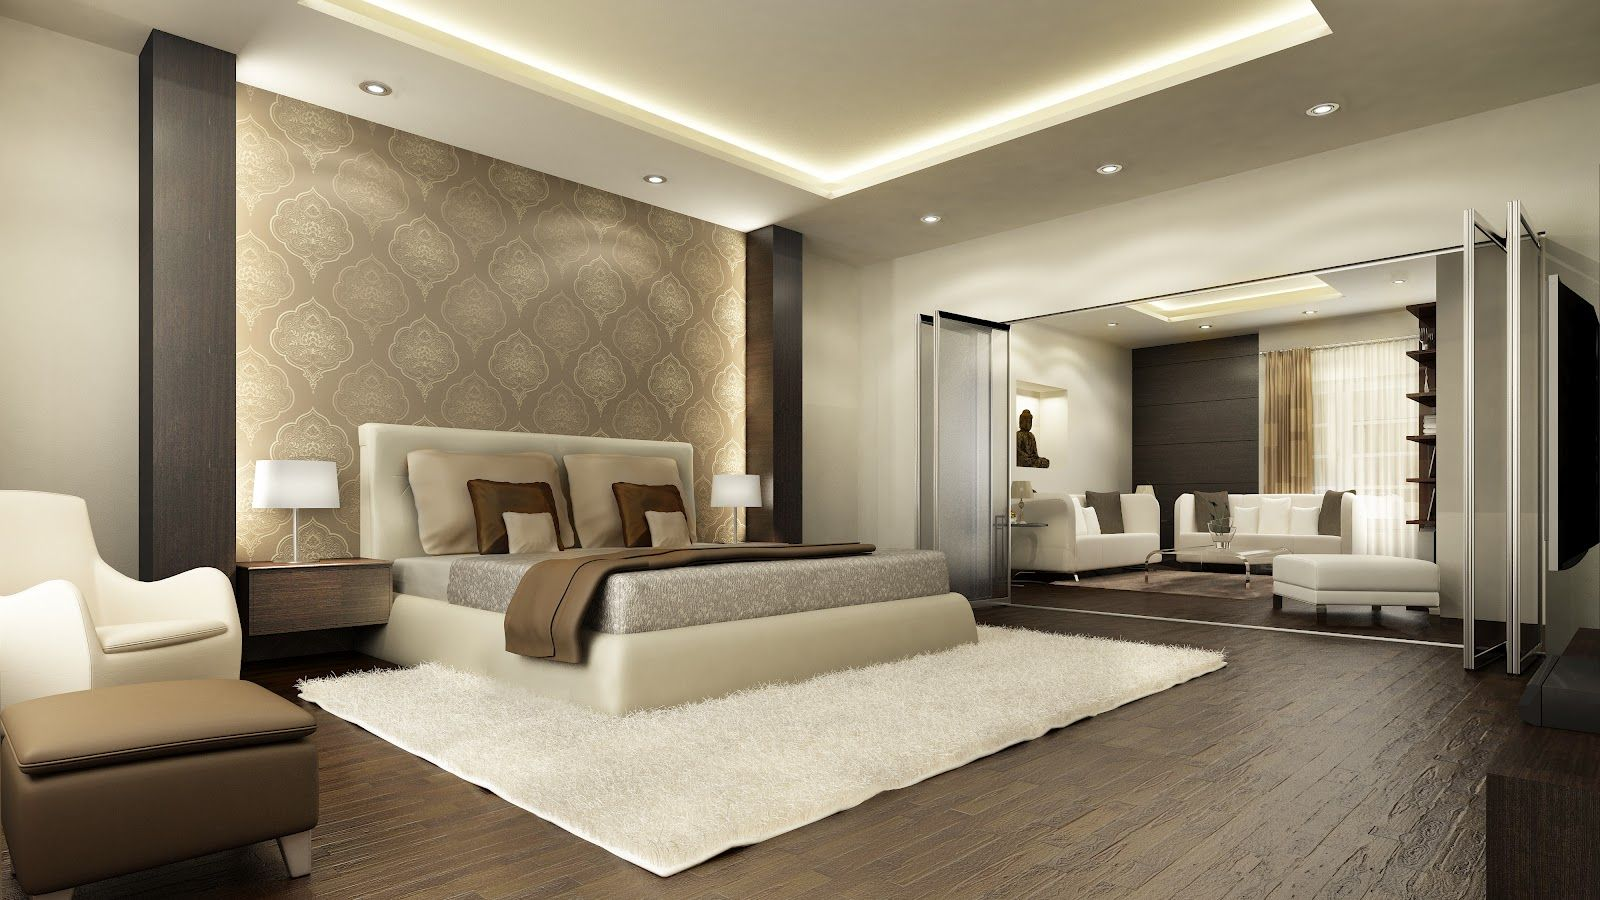 Interier Bedroom Interior Design Bedroom Ideas On A Budget Home Decore